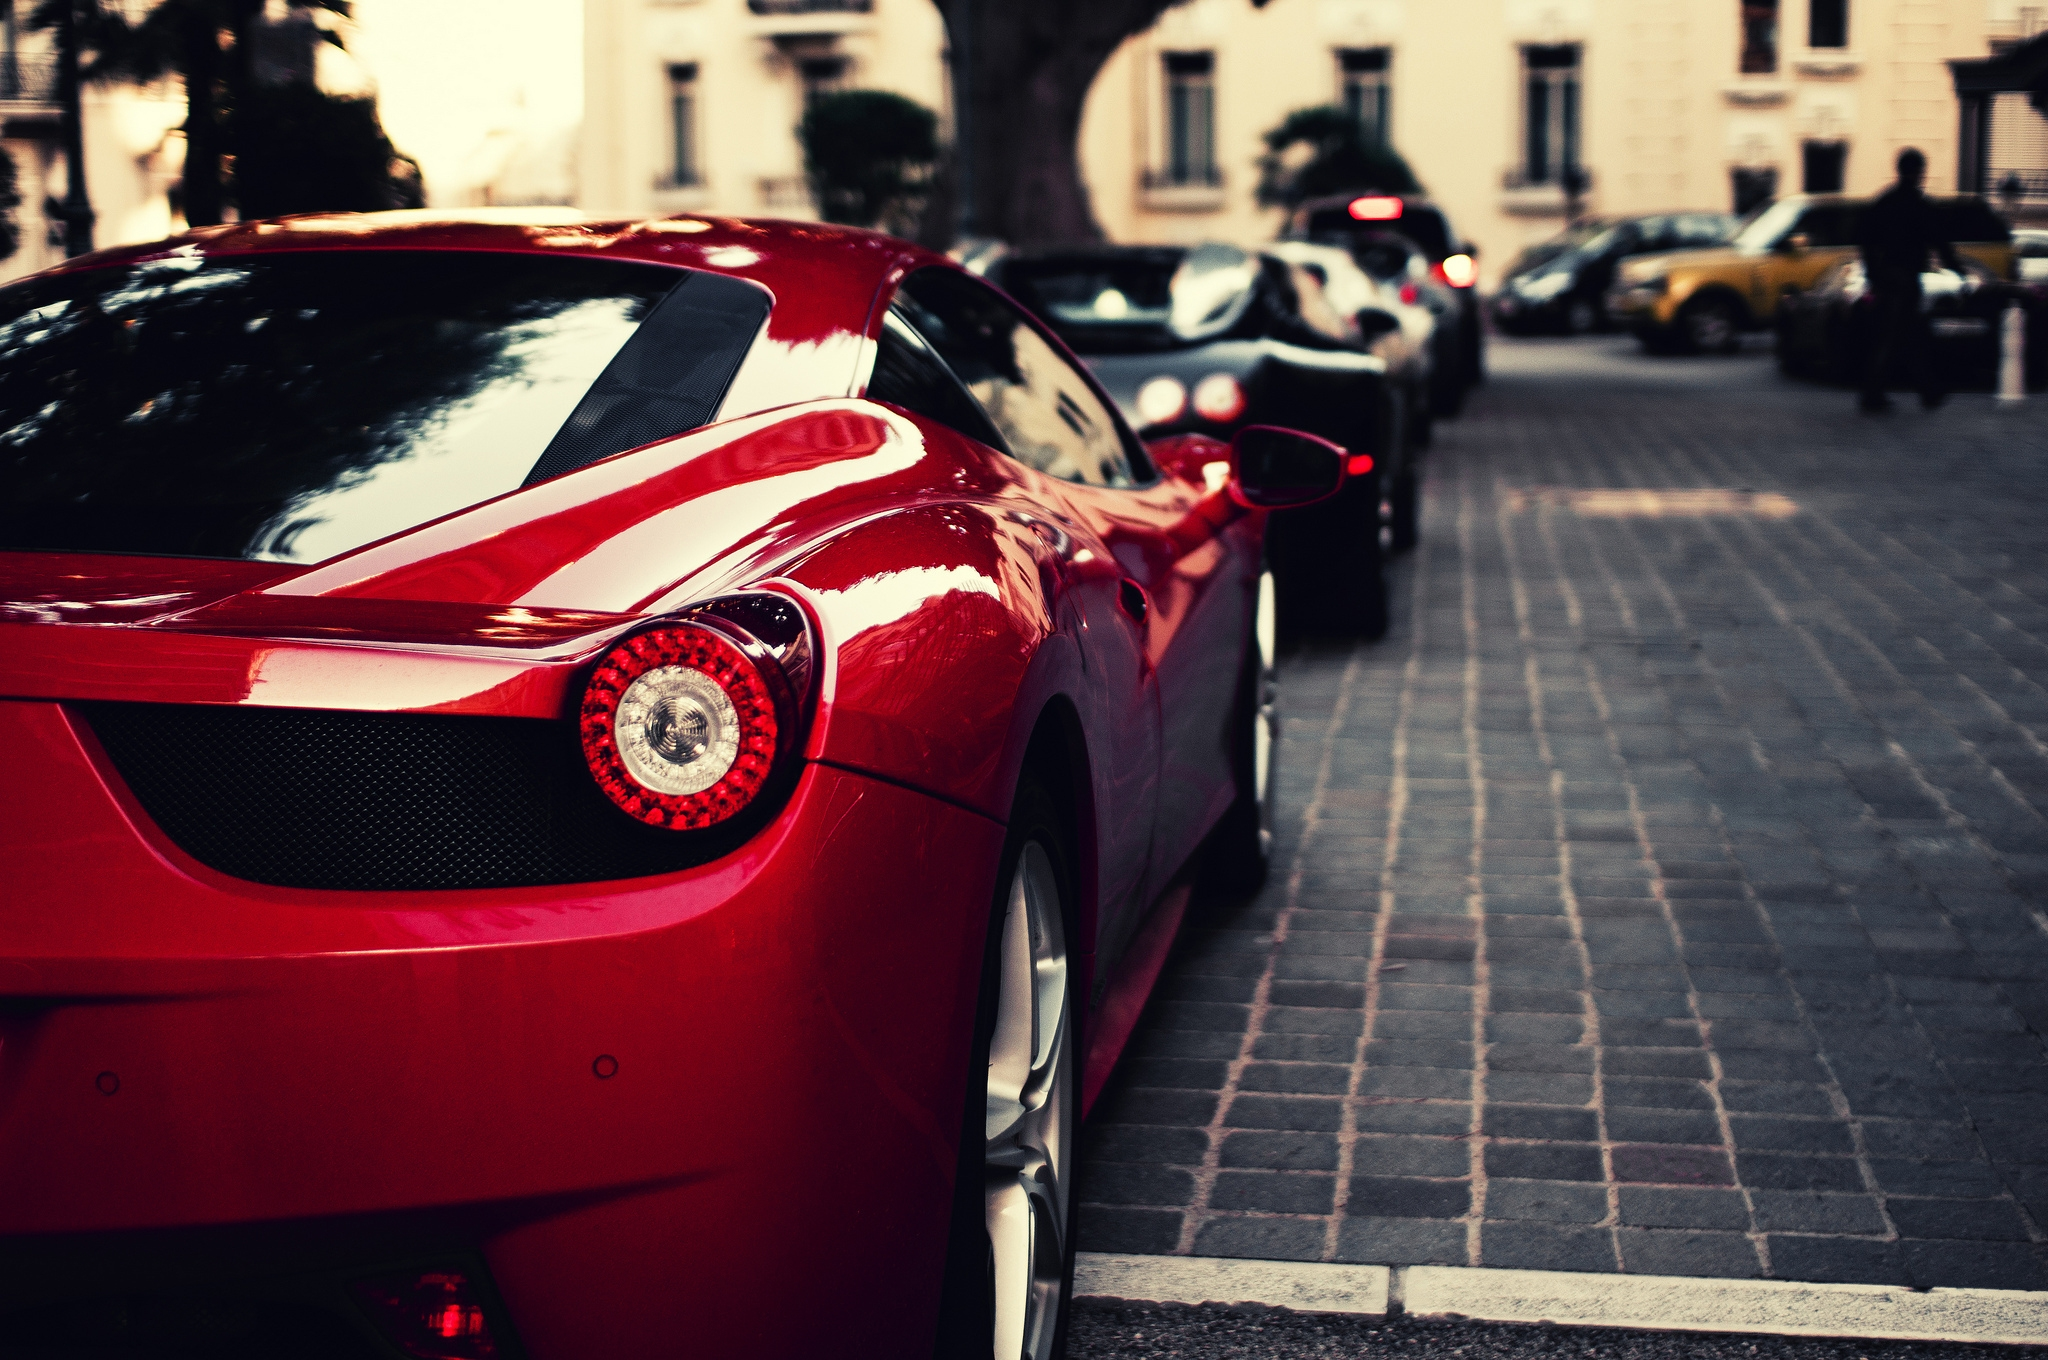 125125 download wallpaper Cars, Bugatti, Ferrari, Italy, Veyron, Weiron screensavers and pictures for free